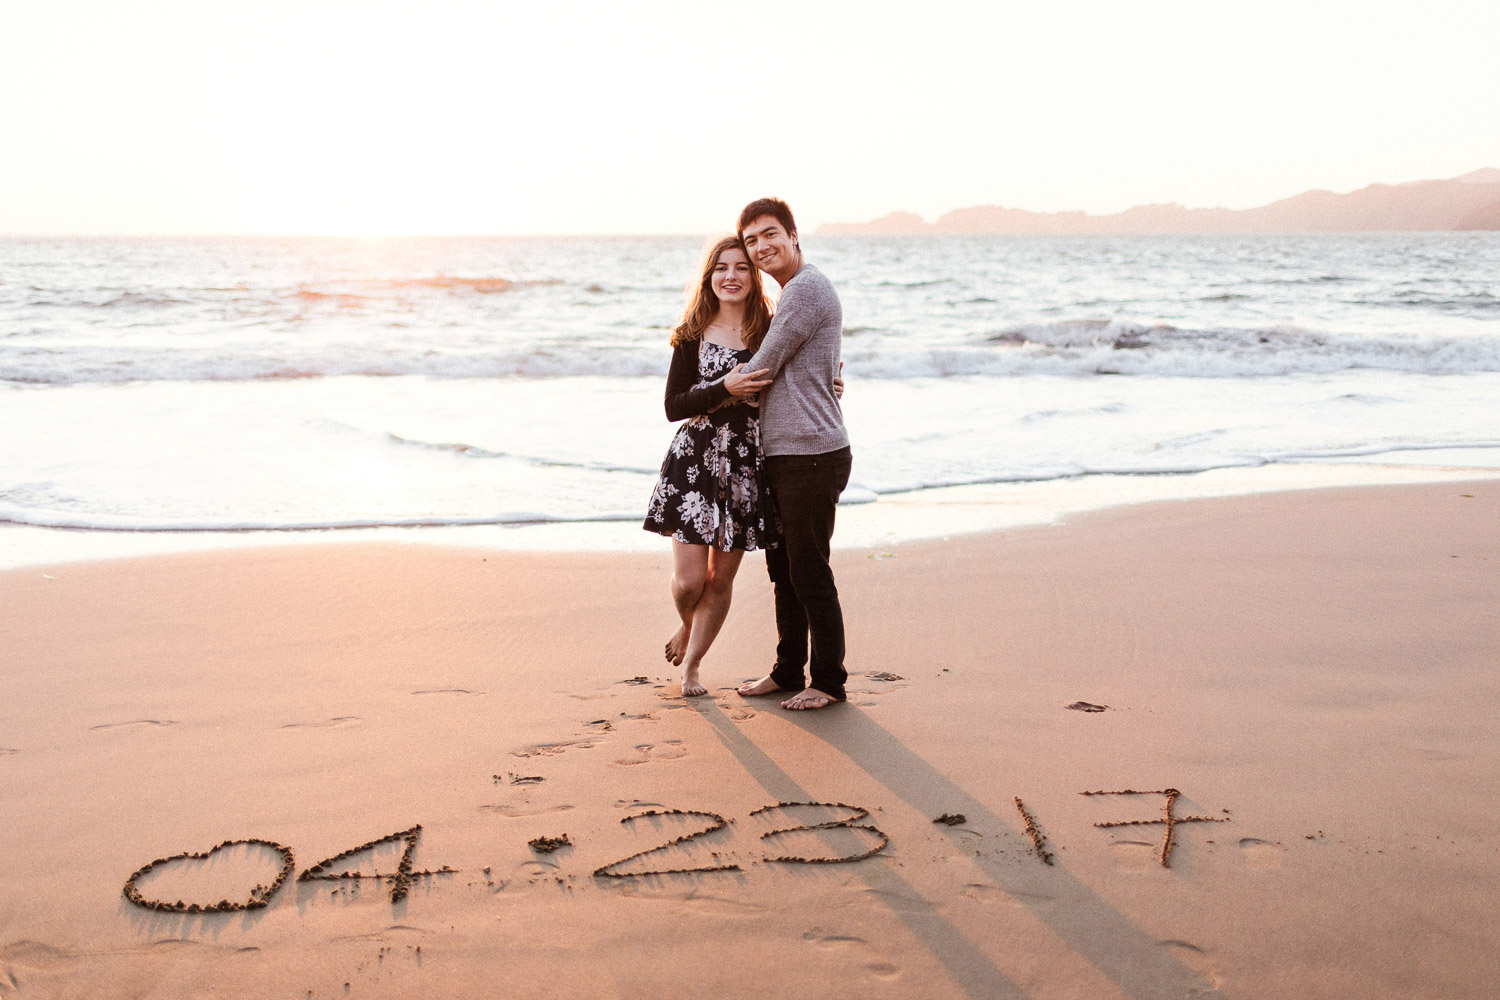 Image of couple hug each other on beach with wedding date written on sand